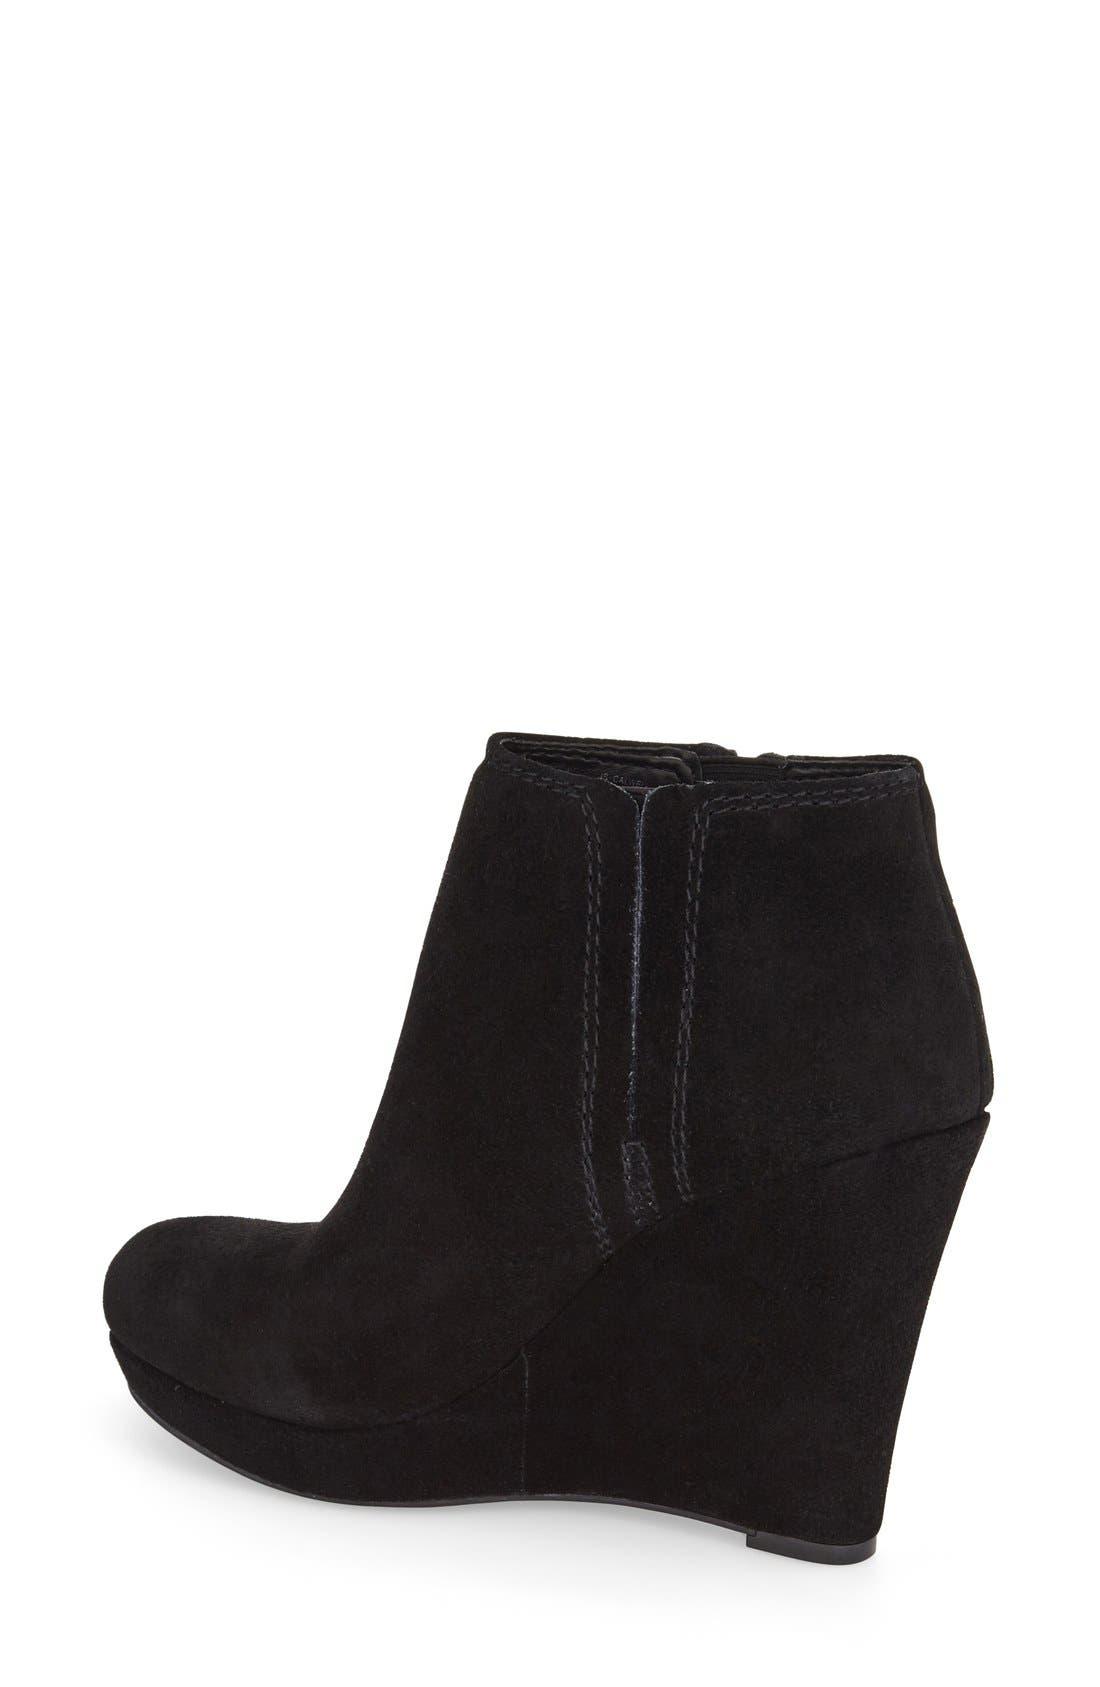 'Calwell' Wedge Bootie,                             Alternate thumbnail 3, color,                             001